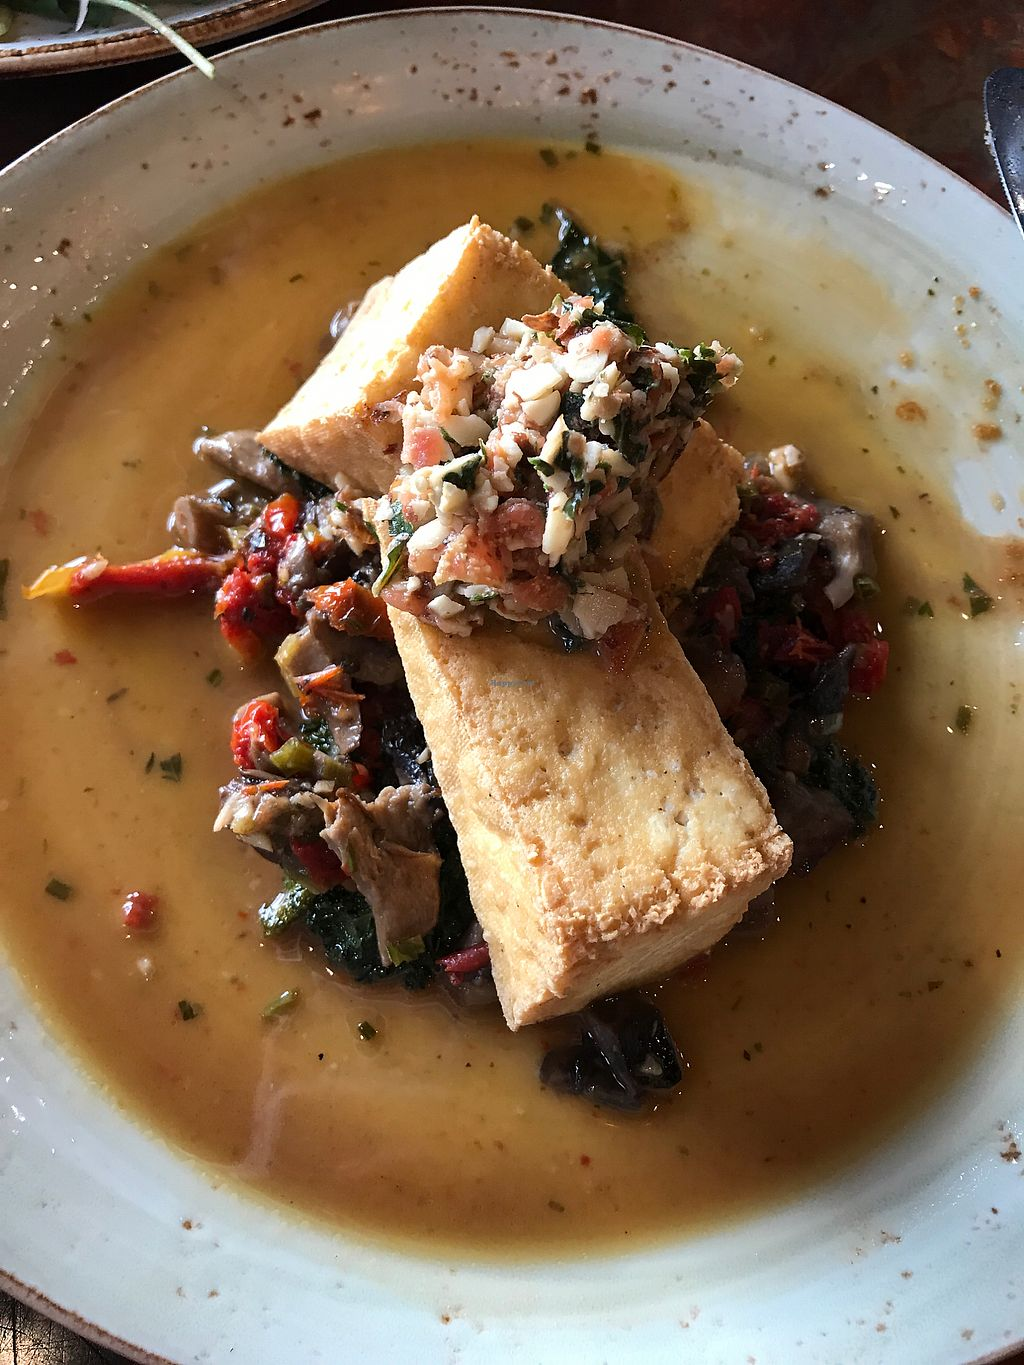 """Photo of Pelican Pub & Brewery  by <a href=""""/members/profile/tiffrob"""">tiffrob</a> <br/>Seasonal Special: Crispy Tofu with Forest Mushrooms <br/> June 27, 2017  - <a href='/contact/abuse/image/77811/273860'>Report</a>"""